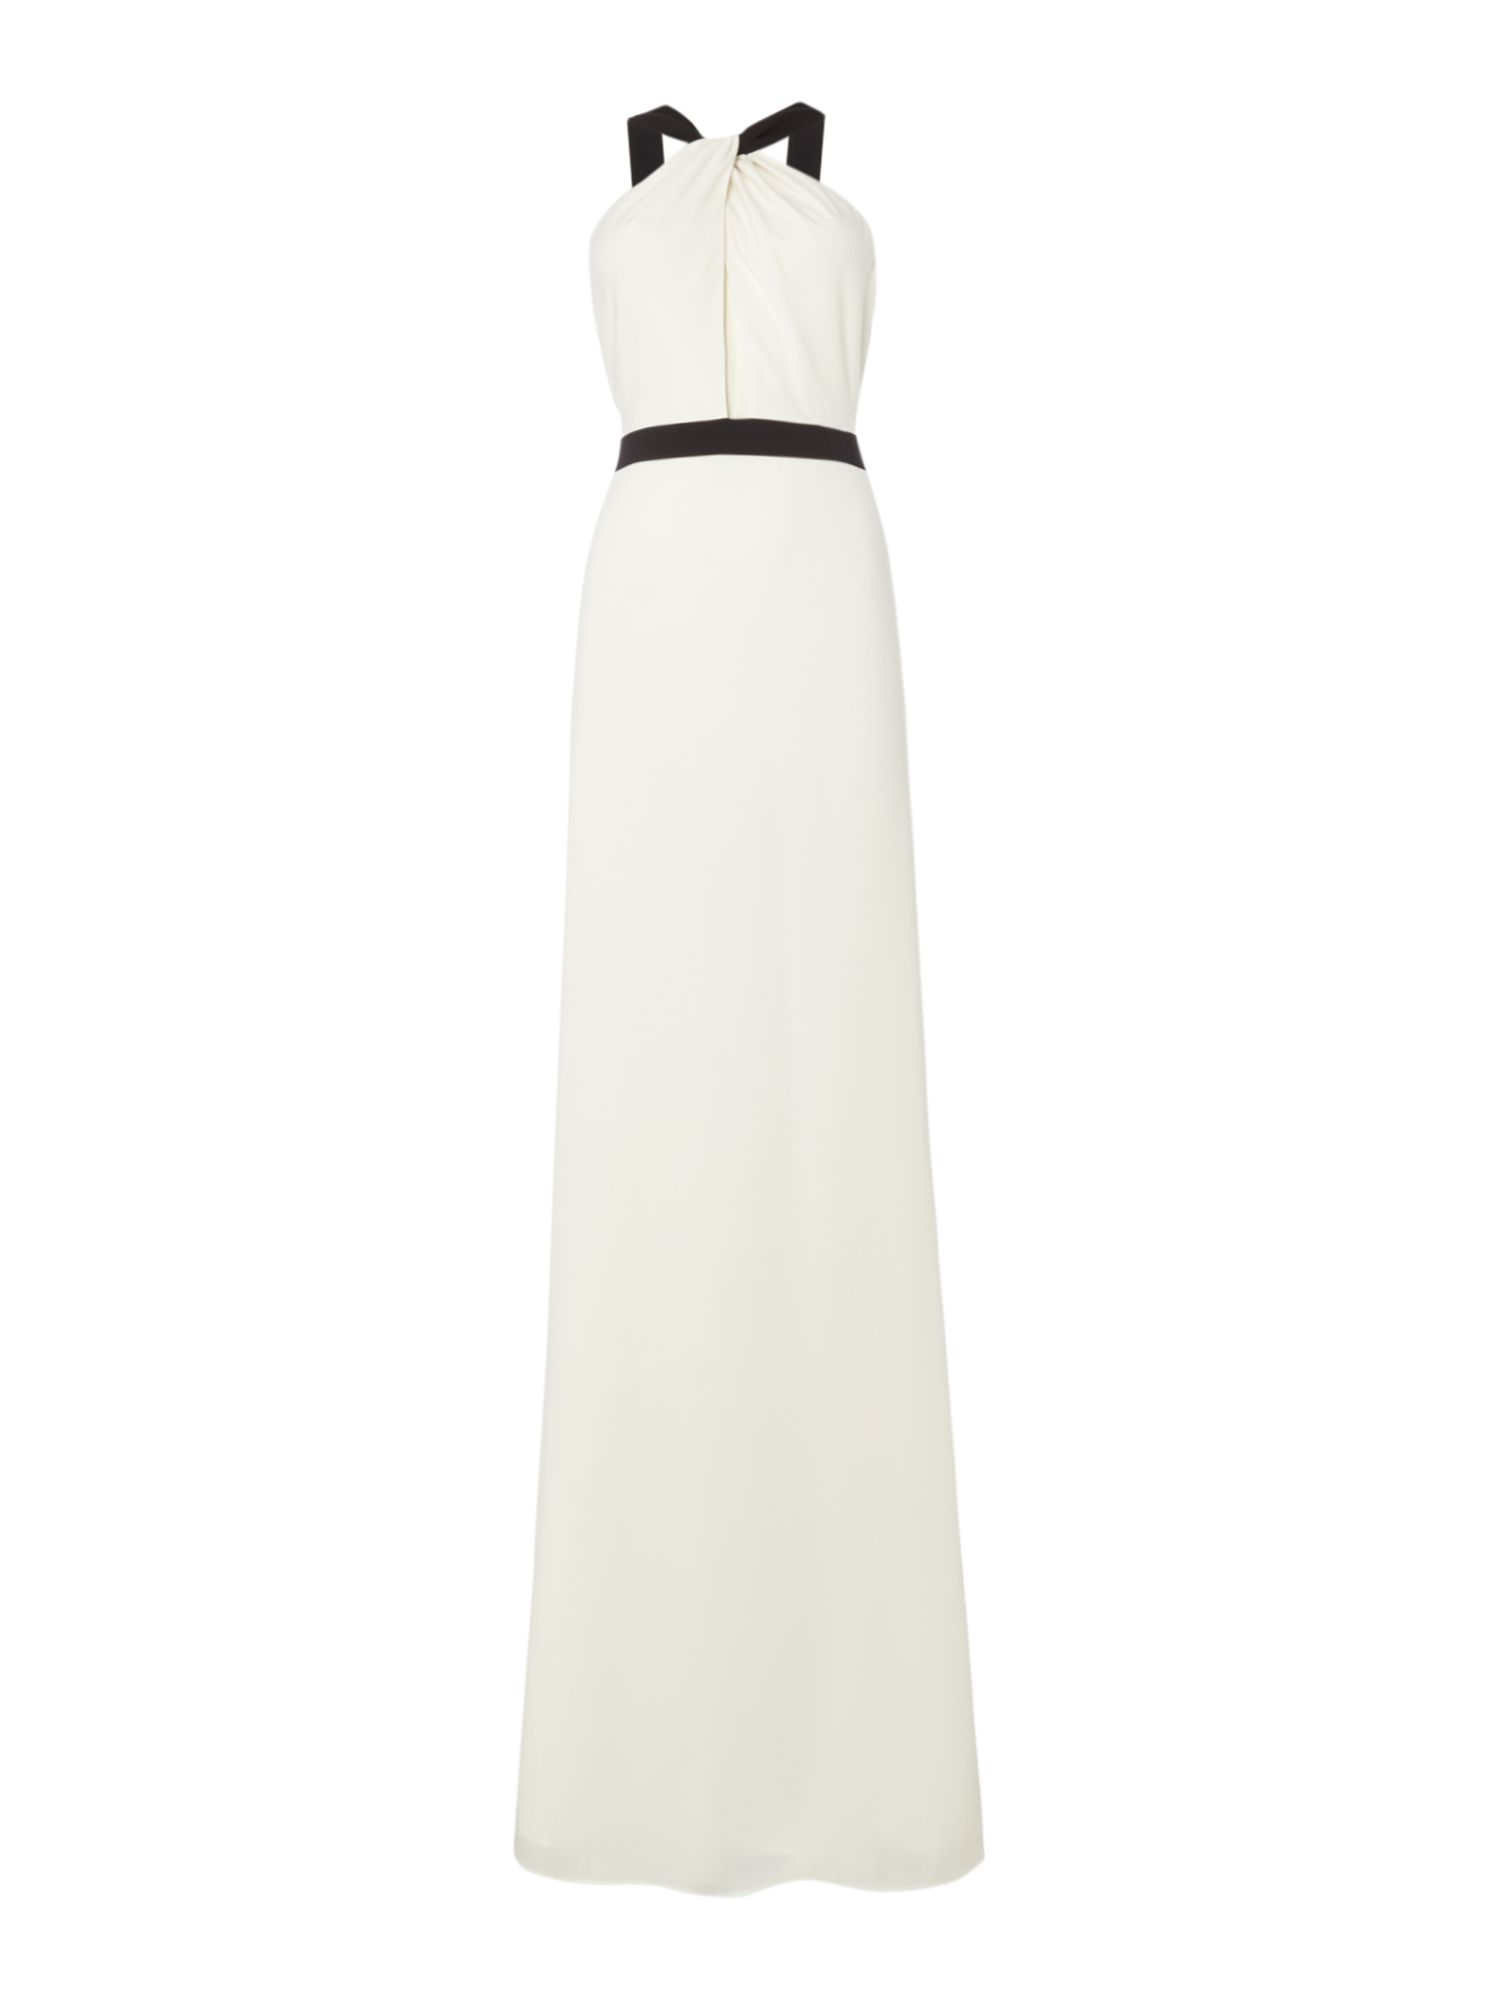 Jill Jill Stuart Crepe gown with contrast strap, Off White